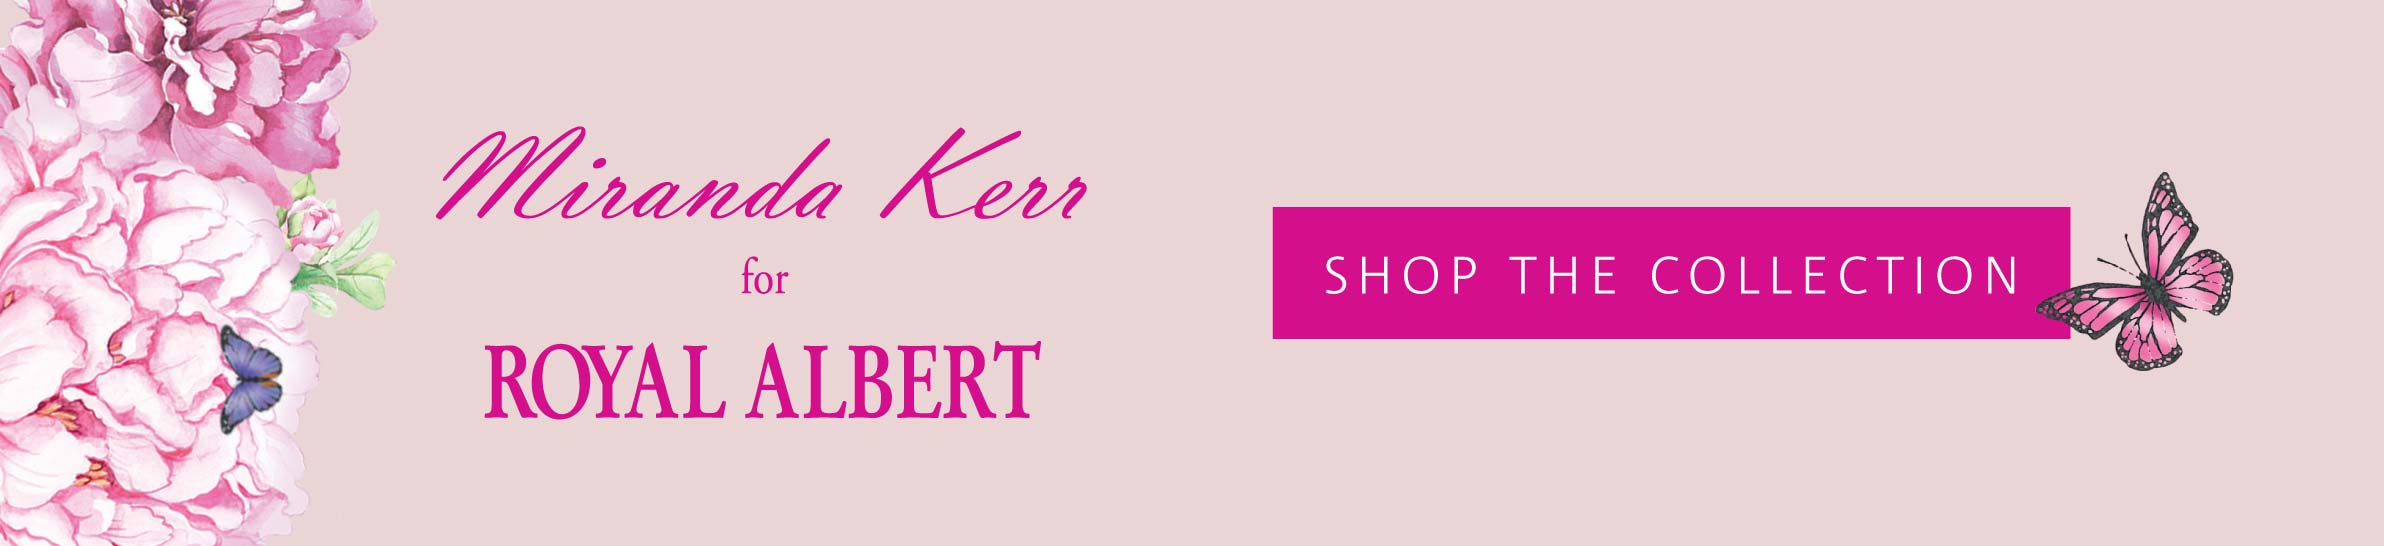 Miranda Kerr for Royal Albert // Shop the collection